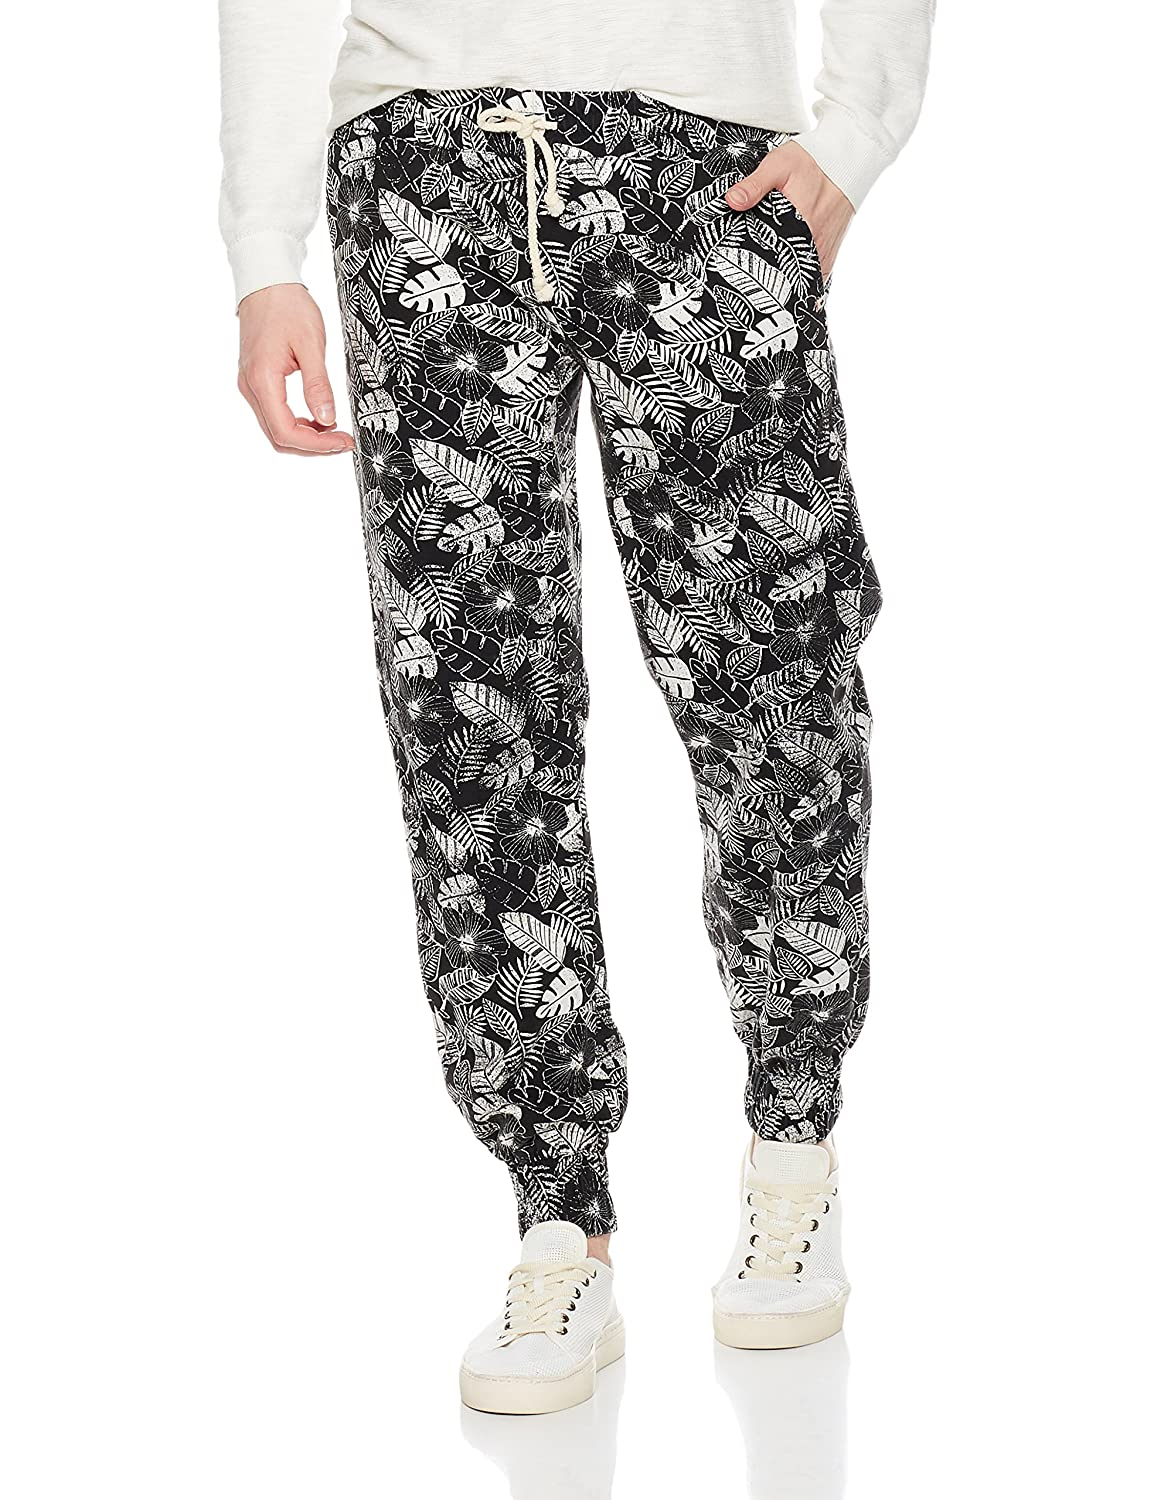 Rebel Canyon Young Men's Slim Fit Elastic Waist Printed Cotton Twill Jogger Sweatpant